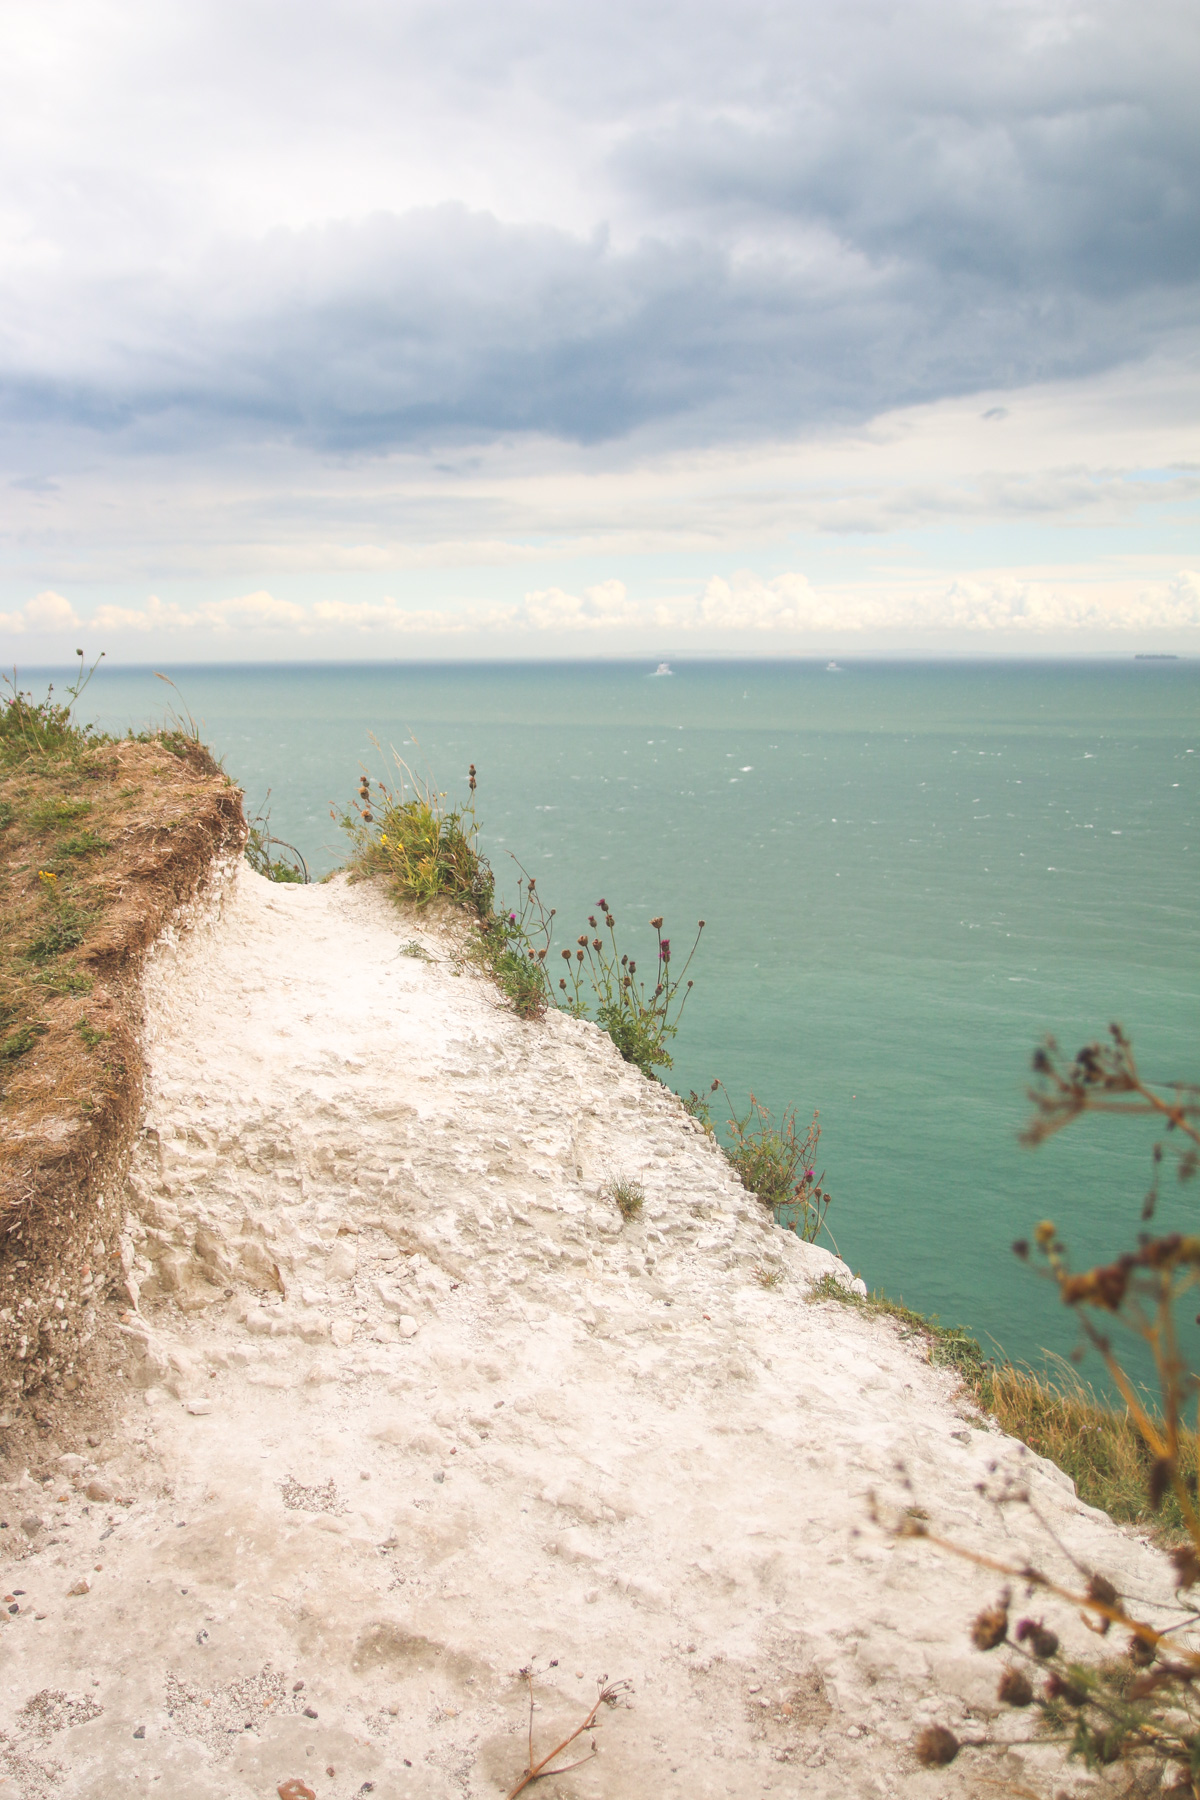 Hiking Trails at White Cliffs of Dover